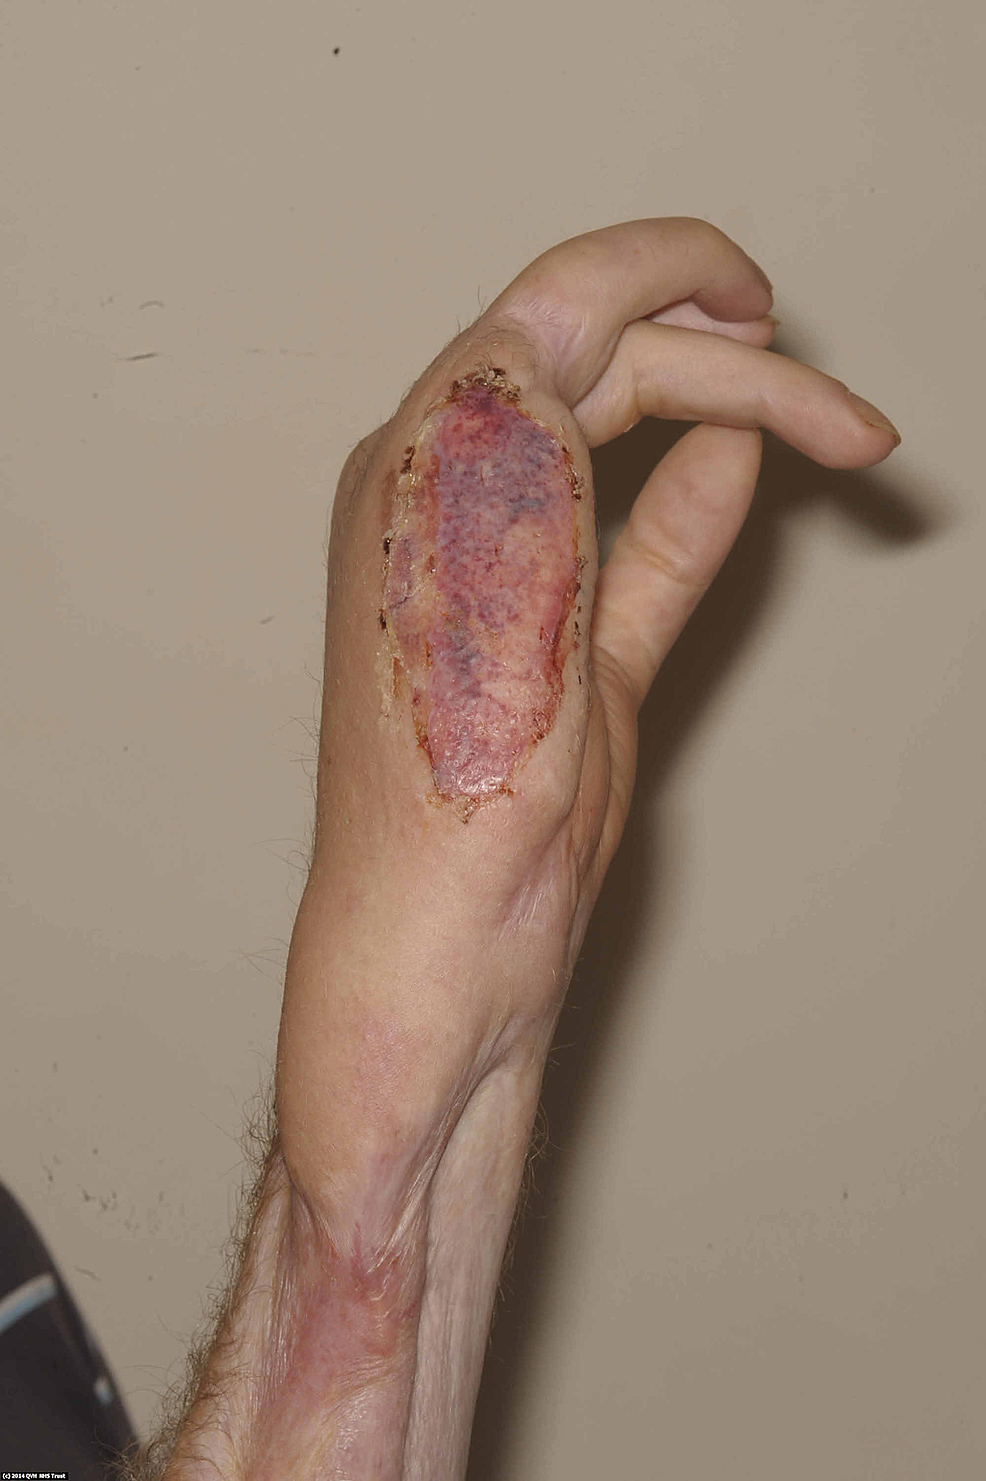 Ten-days-post-skin-grafting,-the-wound-had-almost-fully-healed.